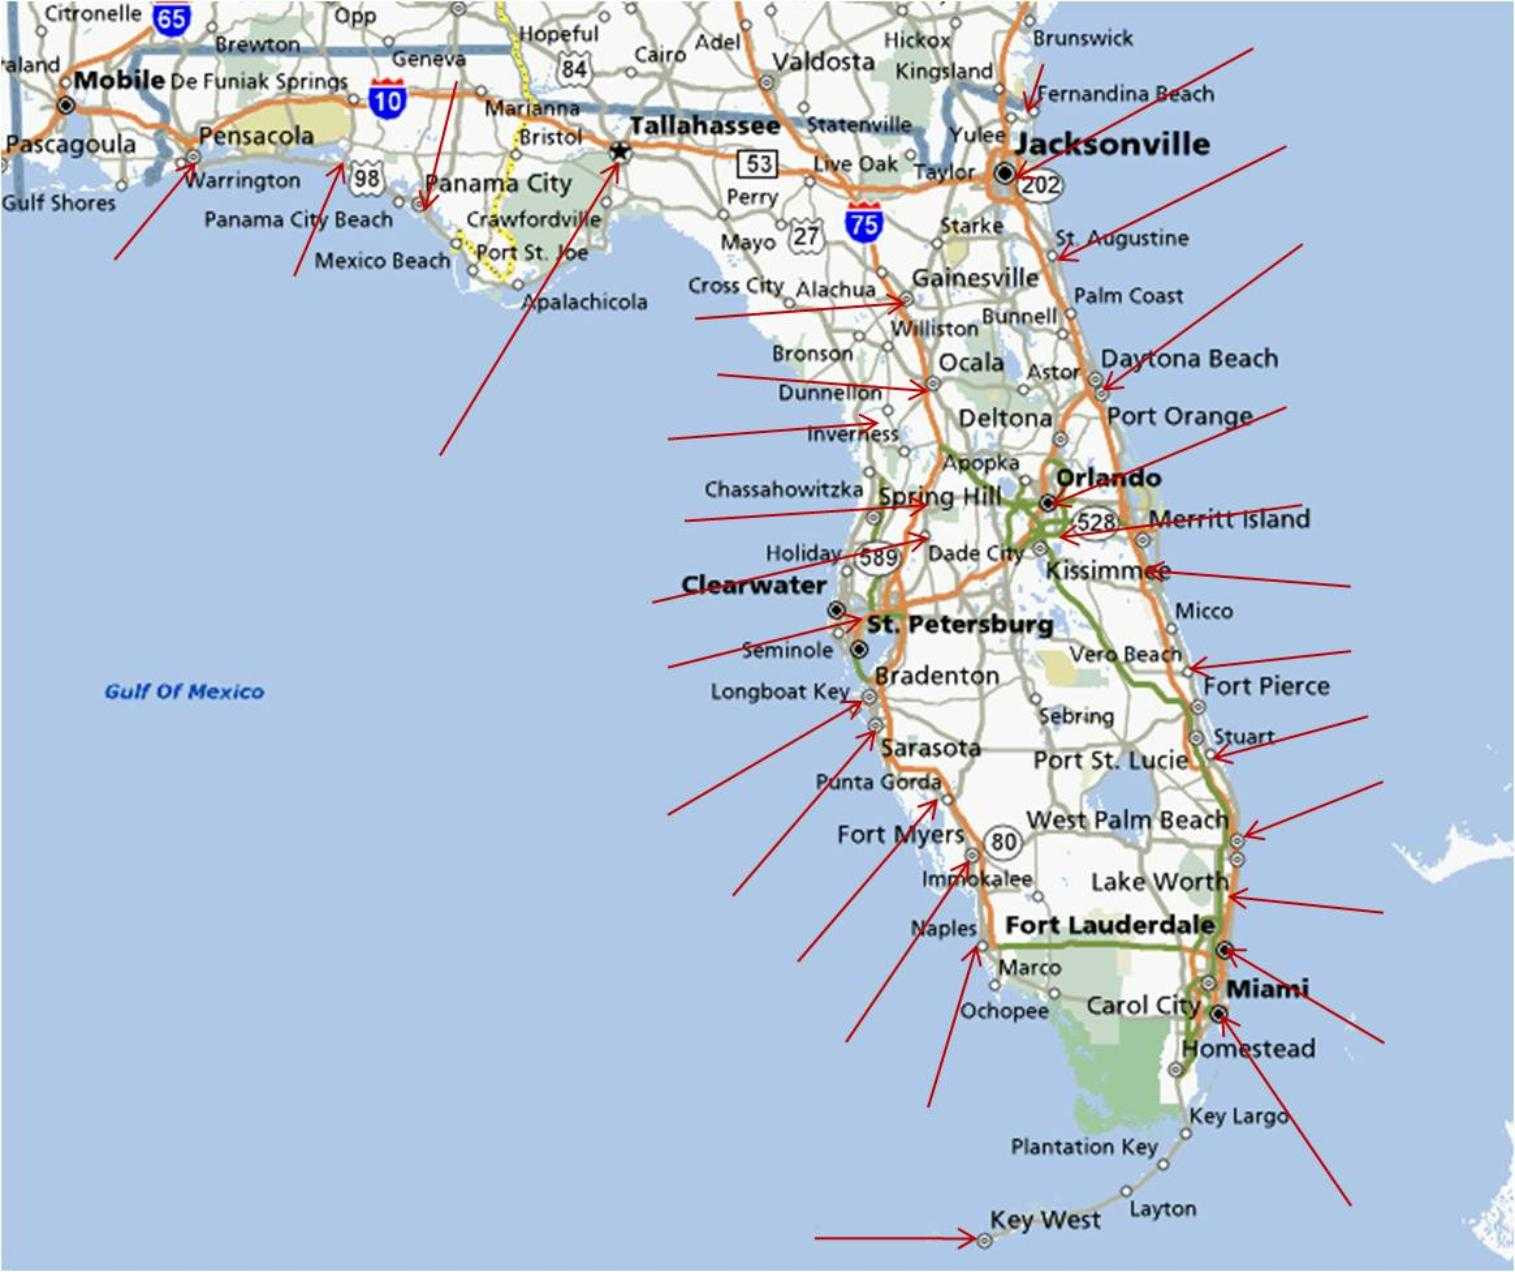 Mexico Beach Fl Map From Ambergontrail 7 - Ameliabd - Where Is Vero Beach Florida On The Map